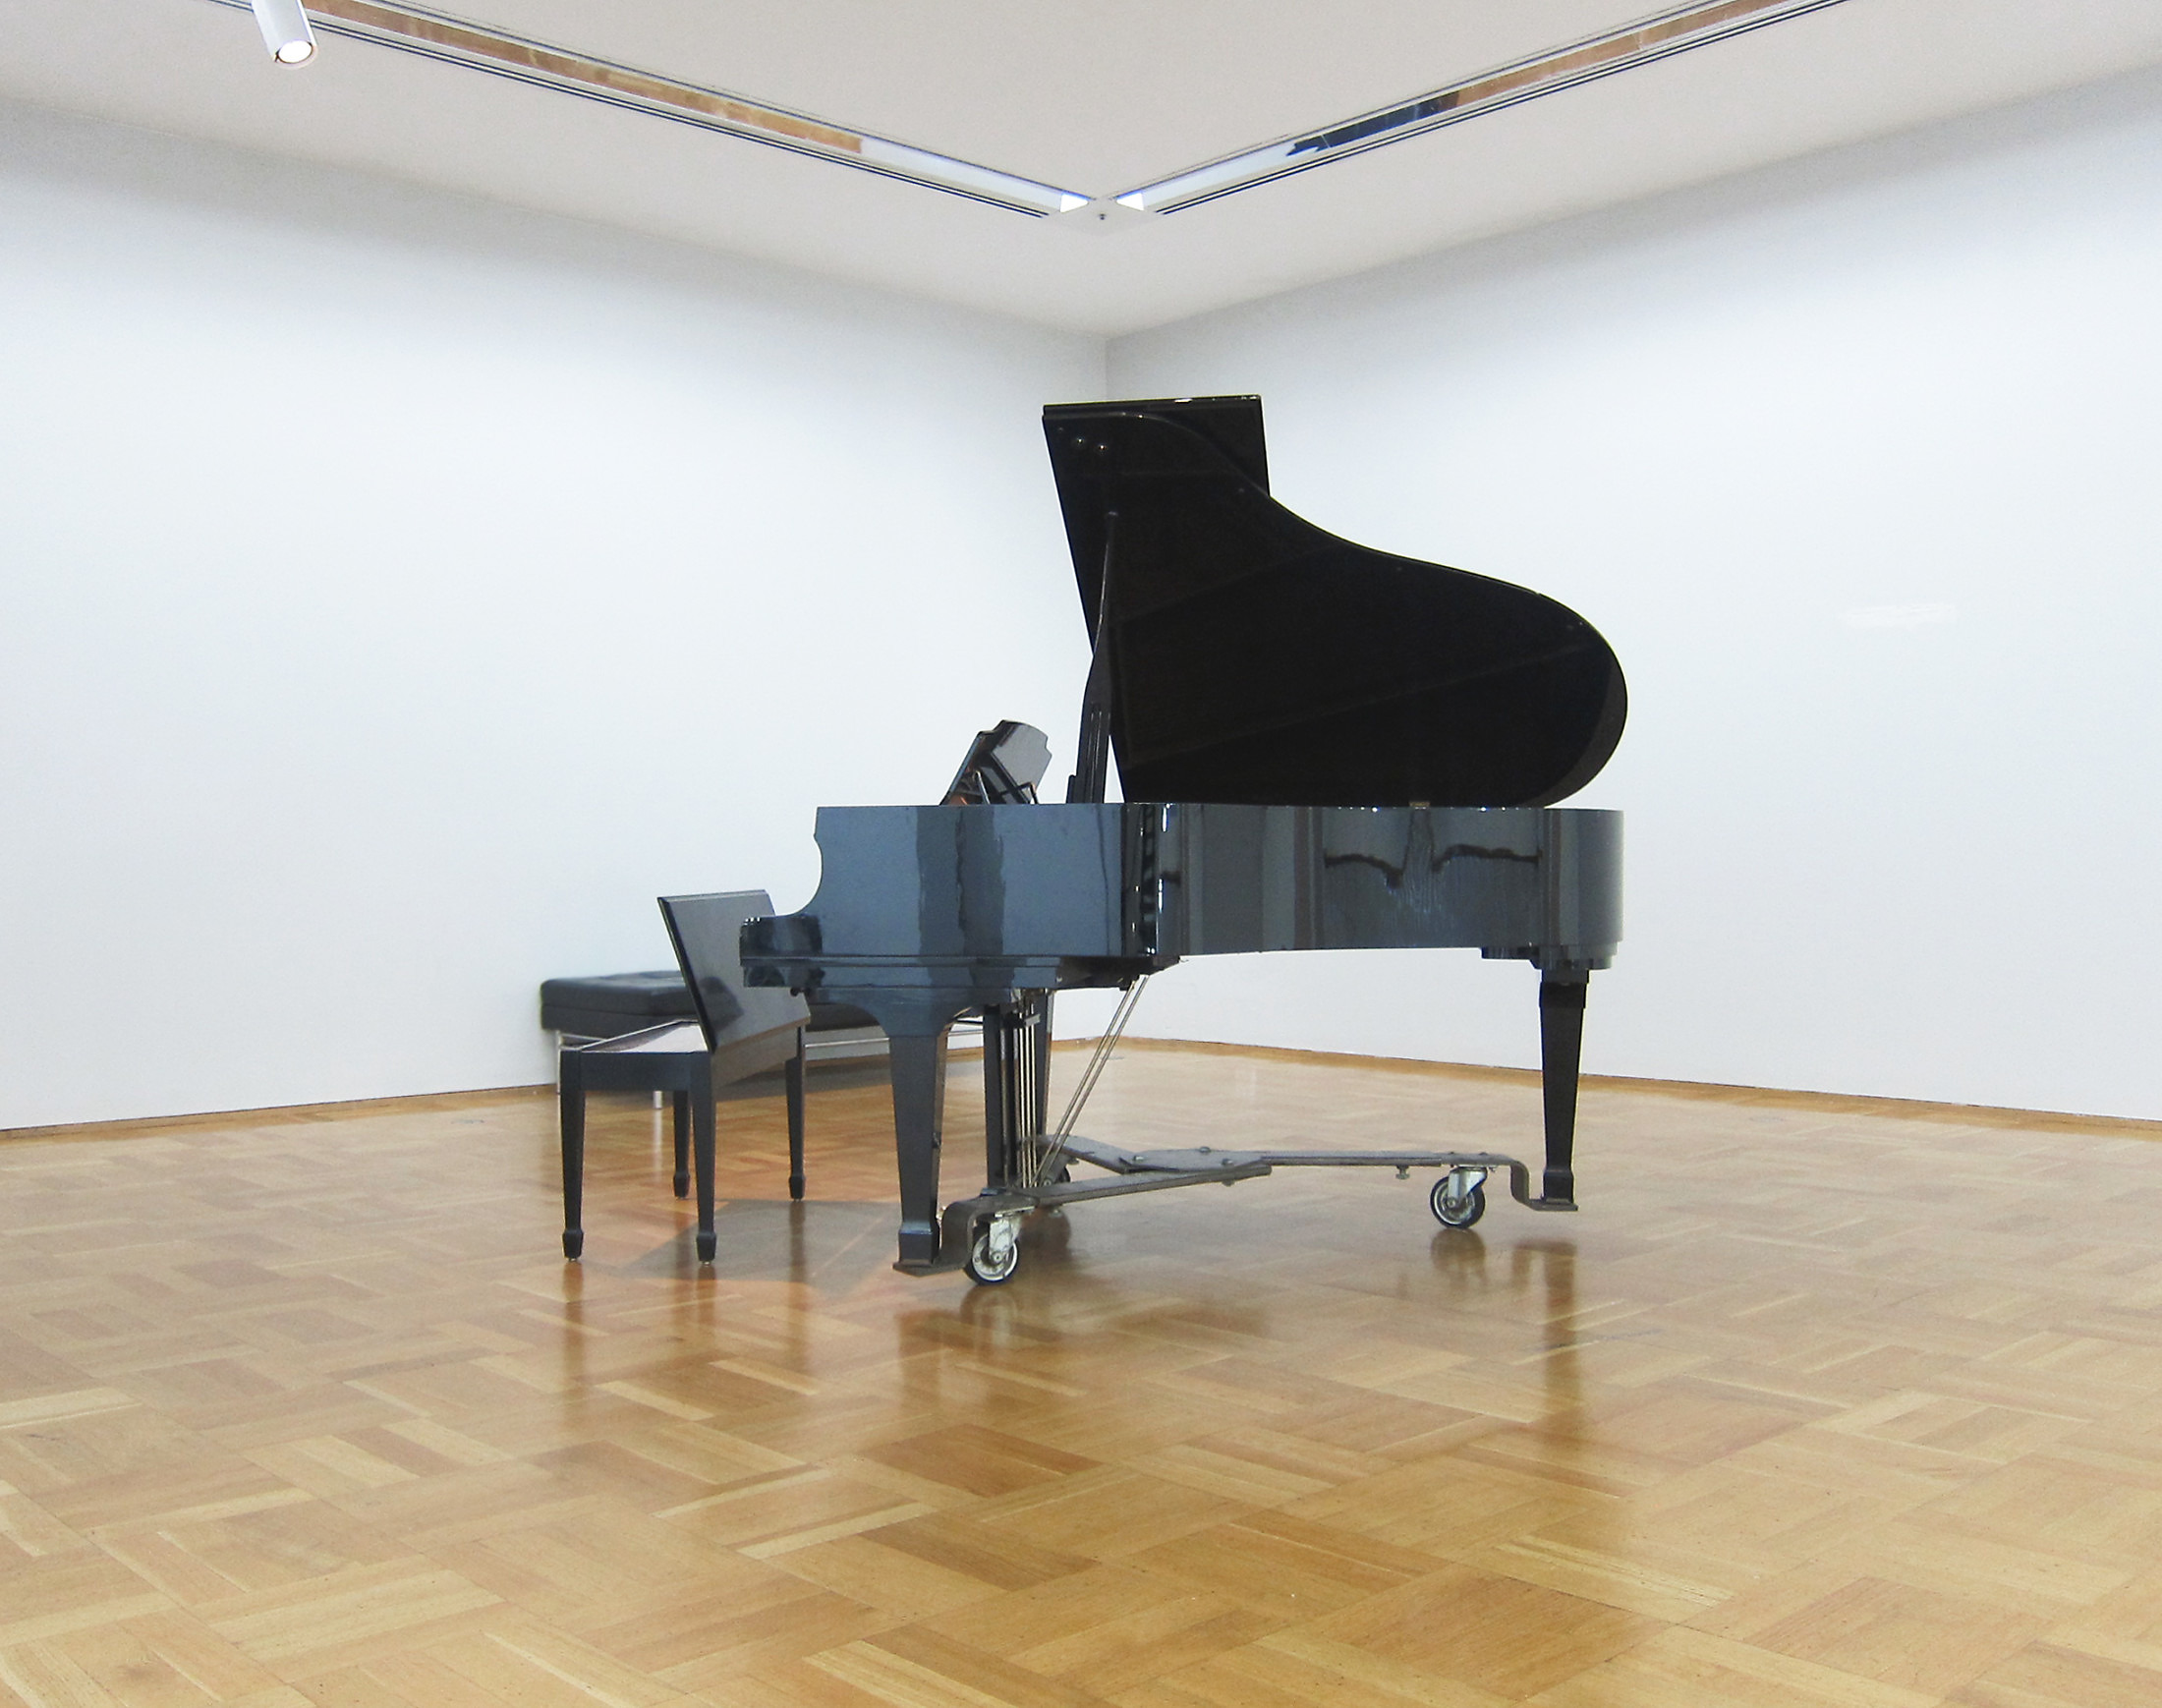 Untitled (3/19/13 – 6/18/13) Kawai grand piano, piano bench, sheet music, and student pianist, 2013 Part of Chicago Works: Jason Lazarus at the Museum of Contemporary Art, Chicago, IL